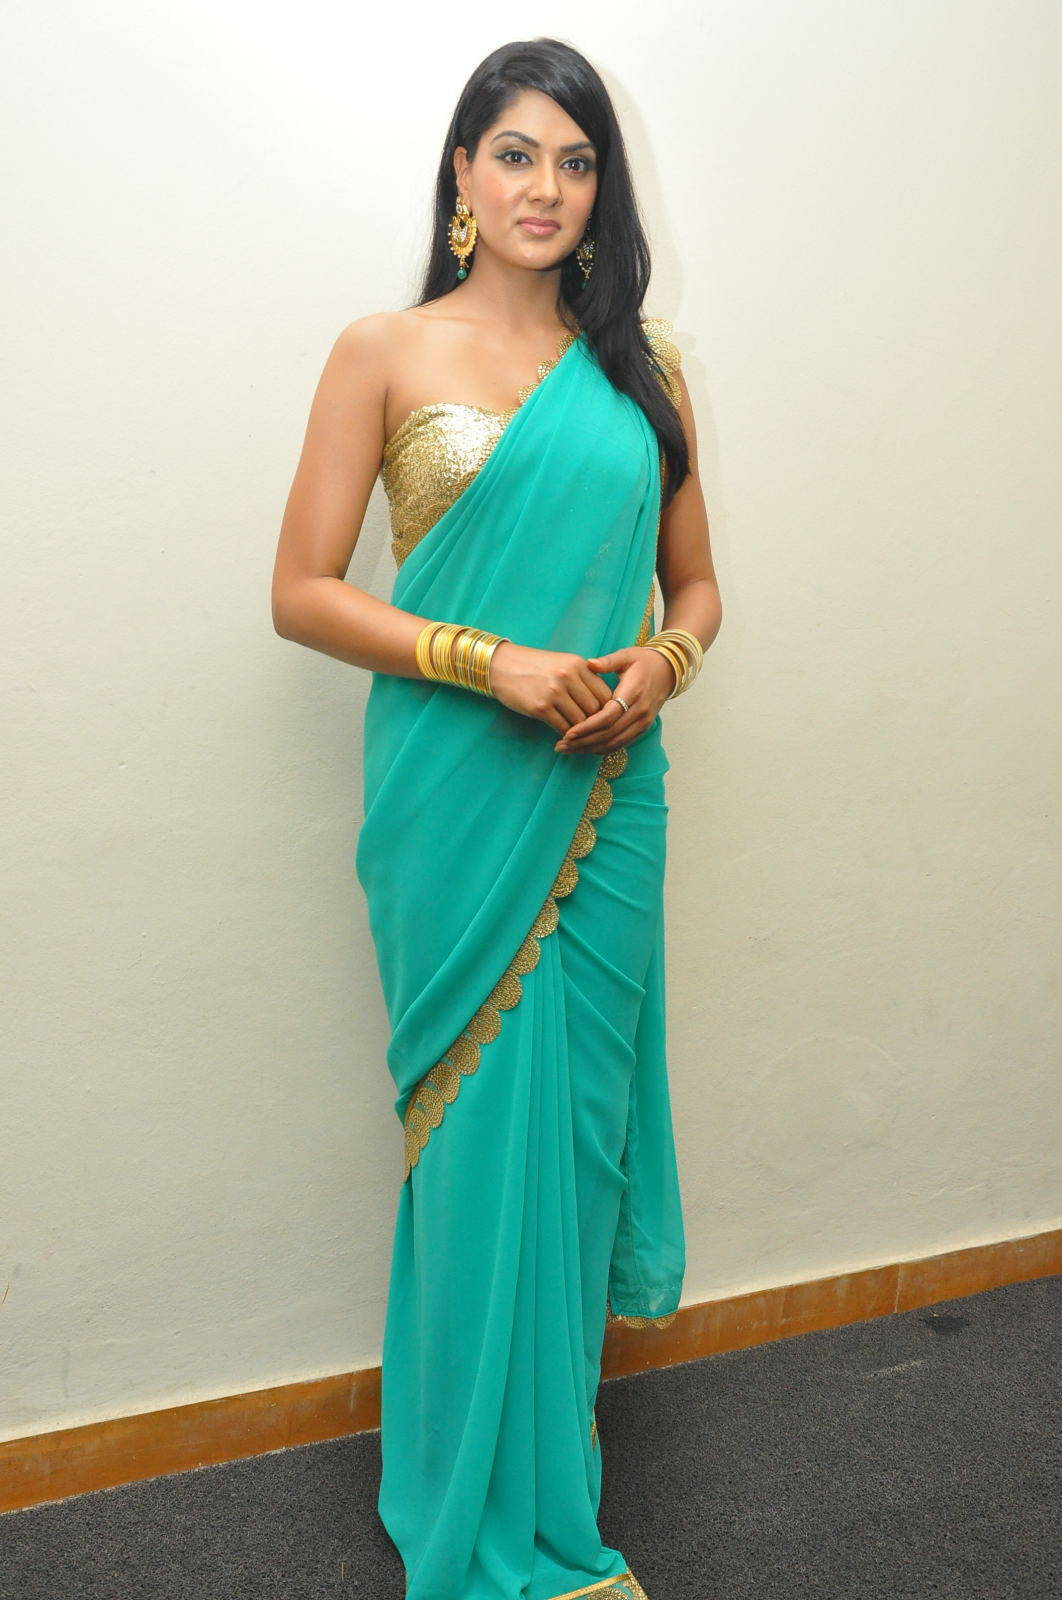 South Indian Hot Girl Sakshi Chaudhary Hip Navel Stills In Designer Green Saree